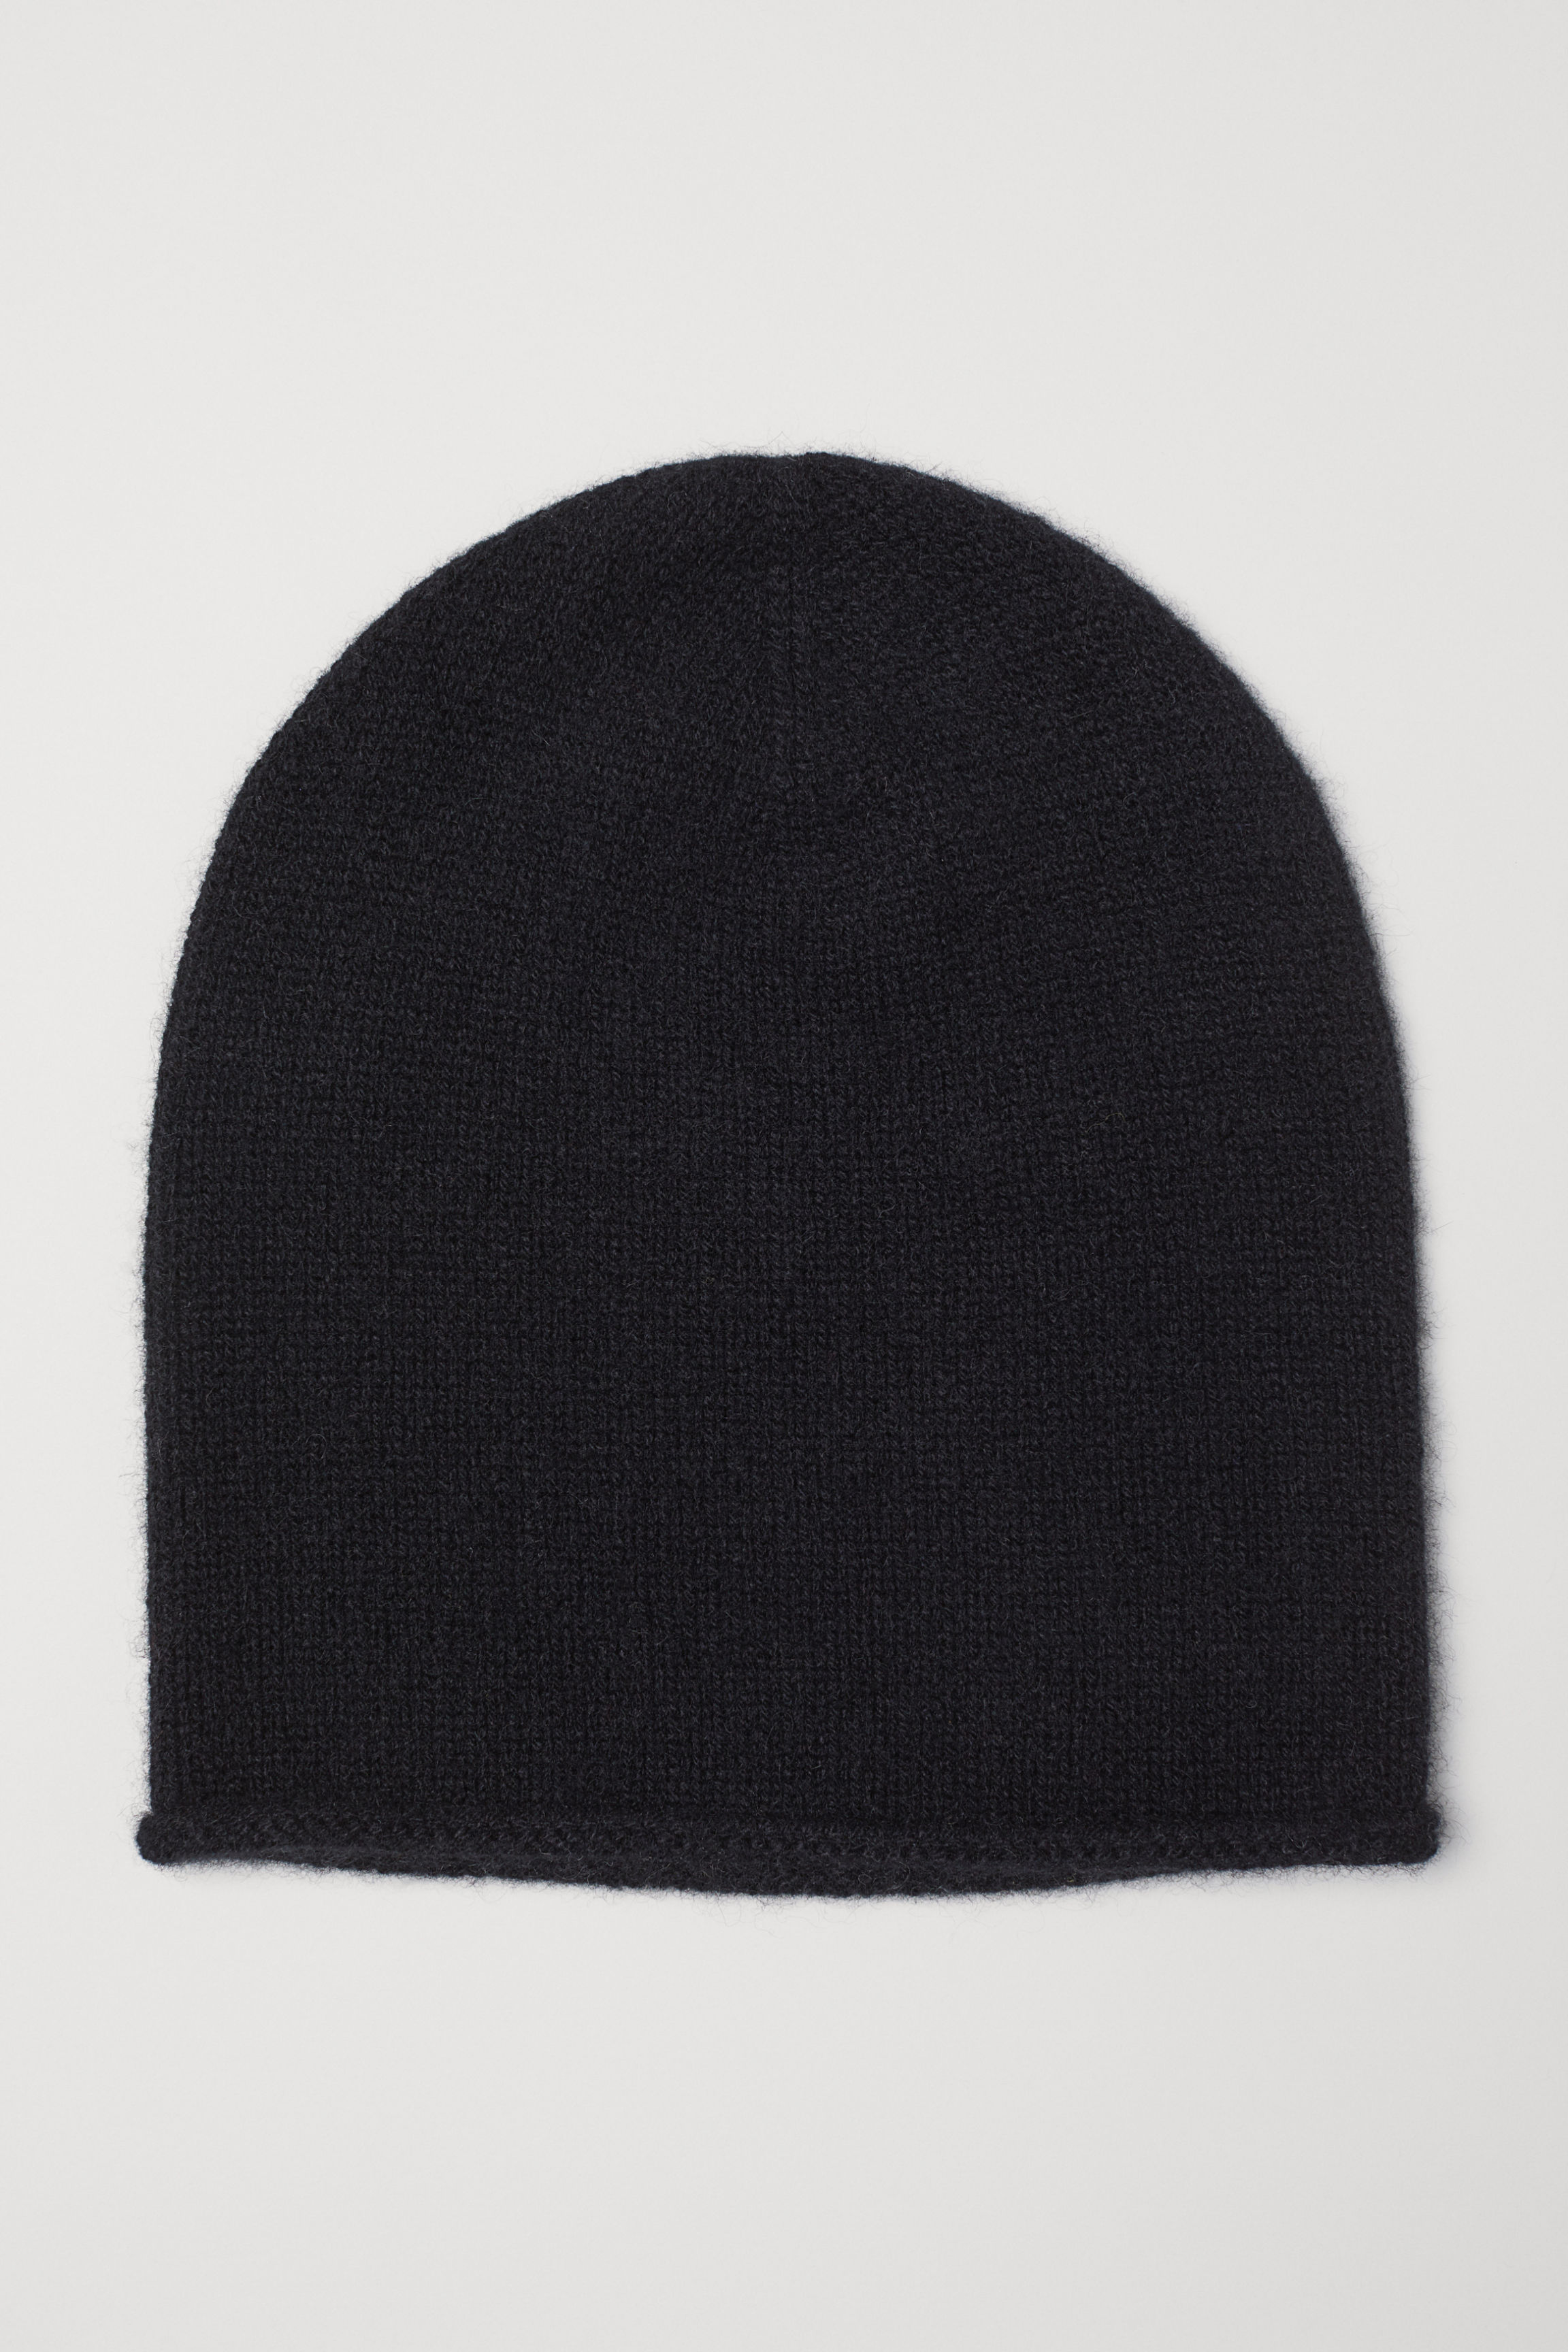 Cashmere hat - Black - Ladies  63c1285daabc